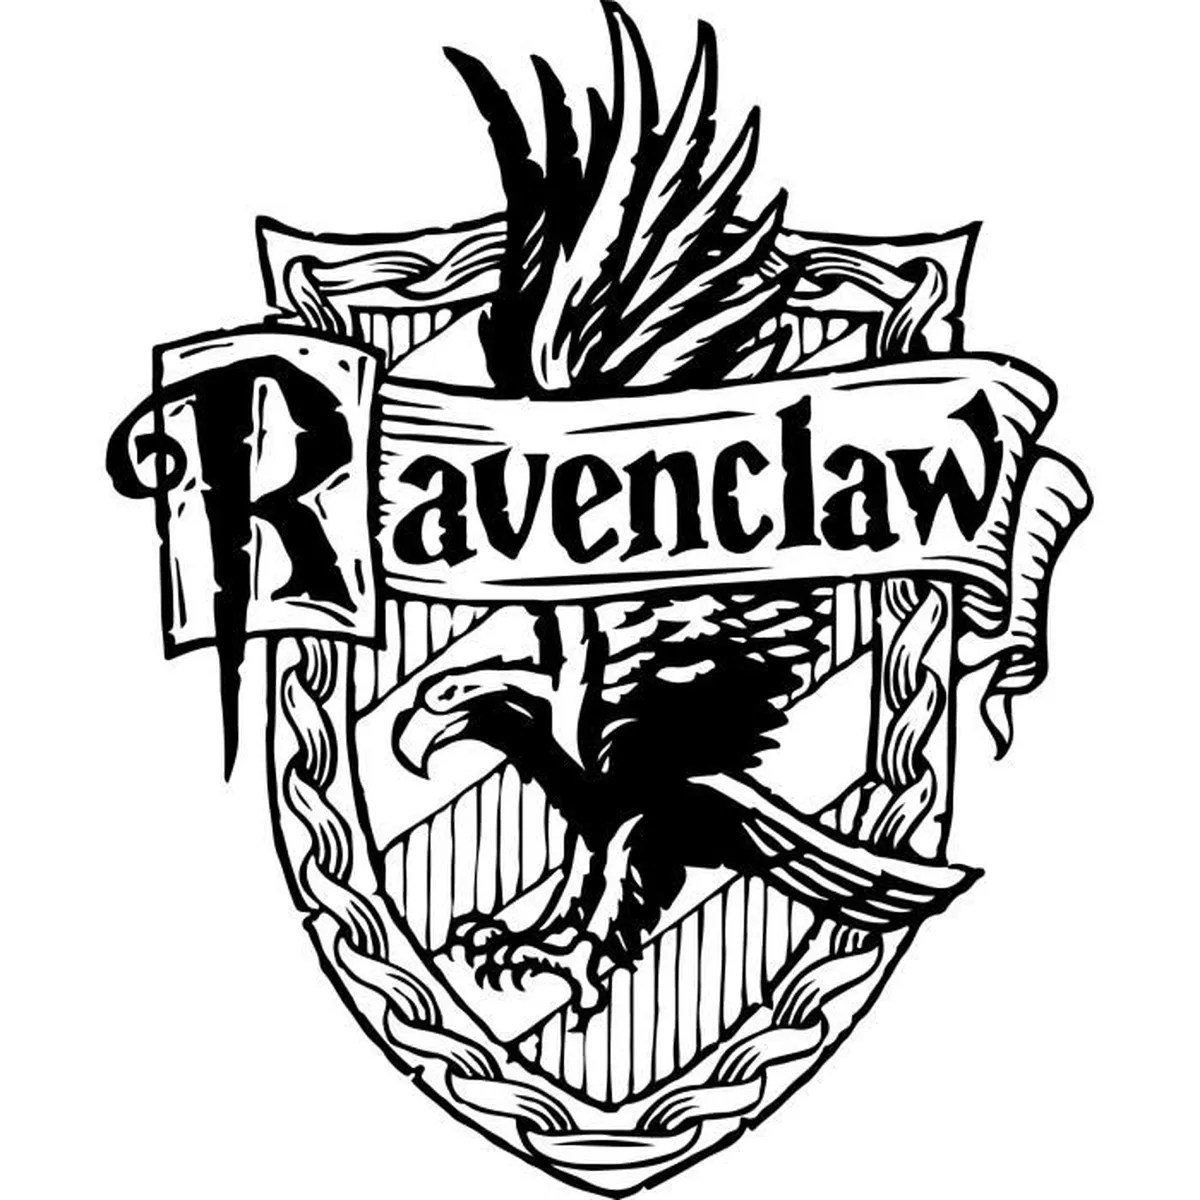 Slytherin House Coloring Pages Sticker Harry Potter 113 Ravenclaw 57x69 Cm Achat